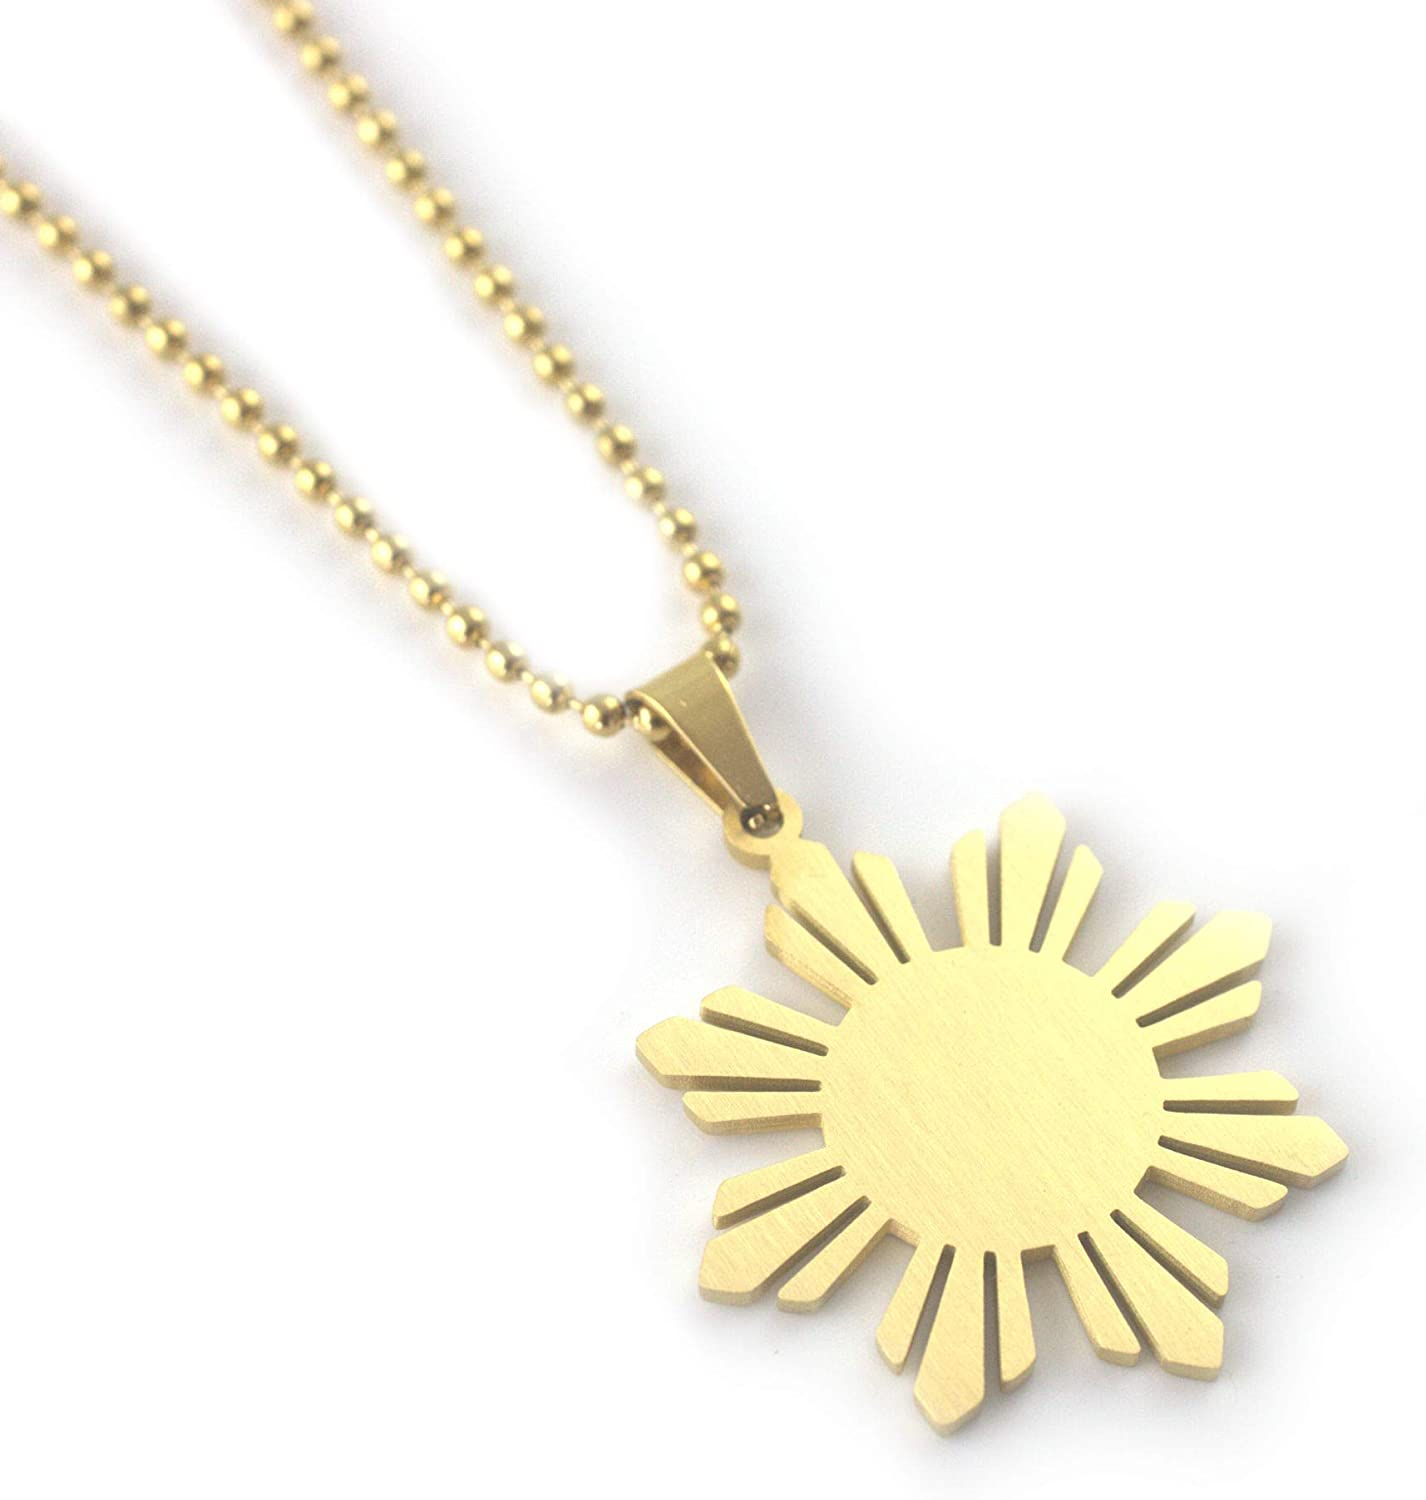 Sunkissed Pinay Philippines Sun Necklace for Men Filipino Pride Jewelry Pinoy Fashion